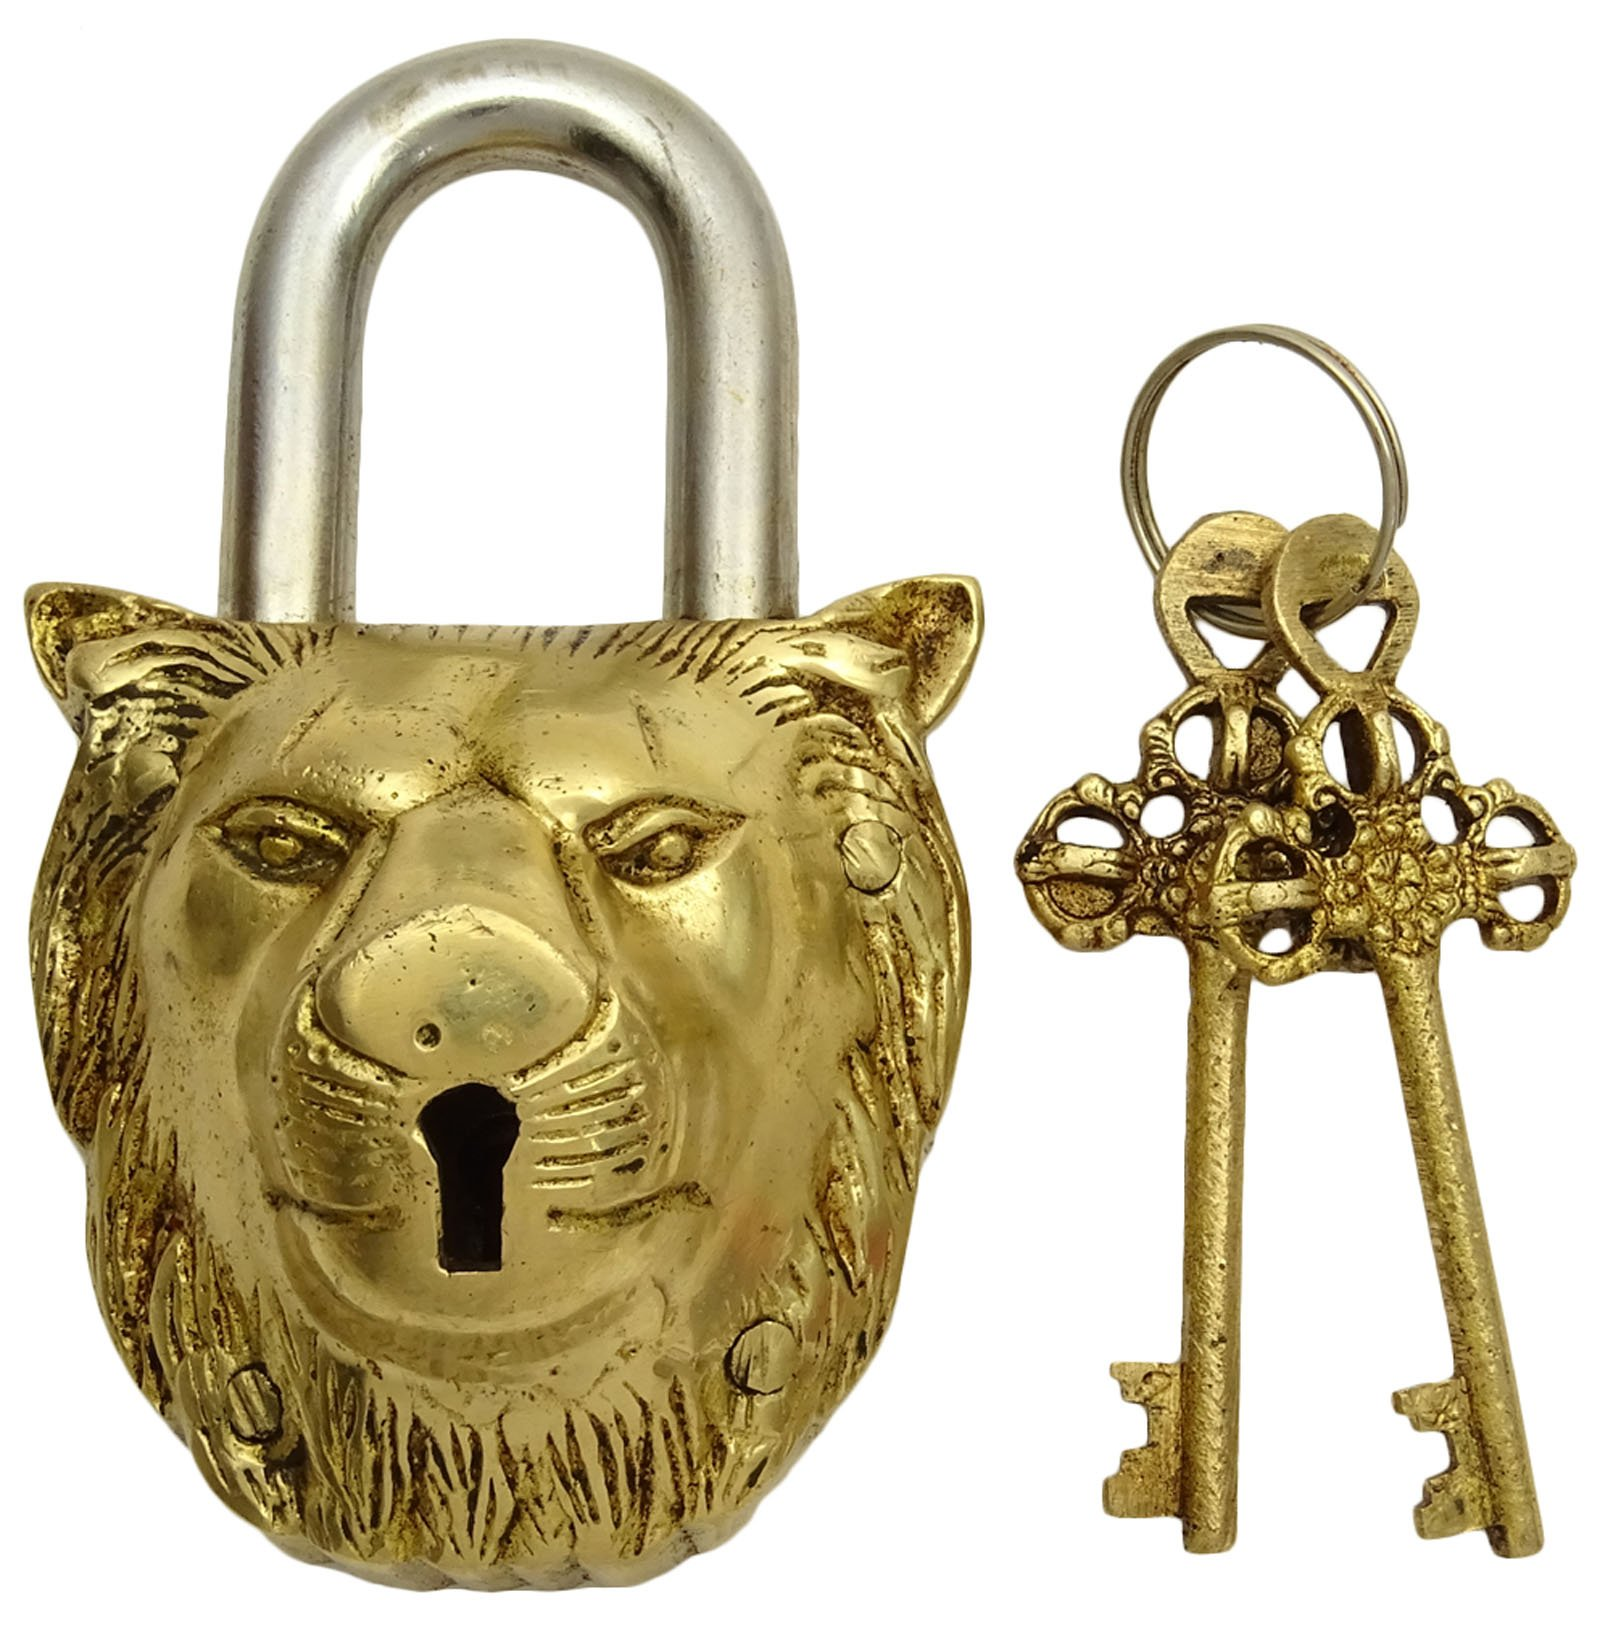 Home Decorative Handcrafted Lion Head Design Brass Metal Padlock With 2 Keys